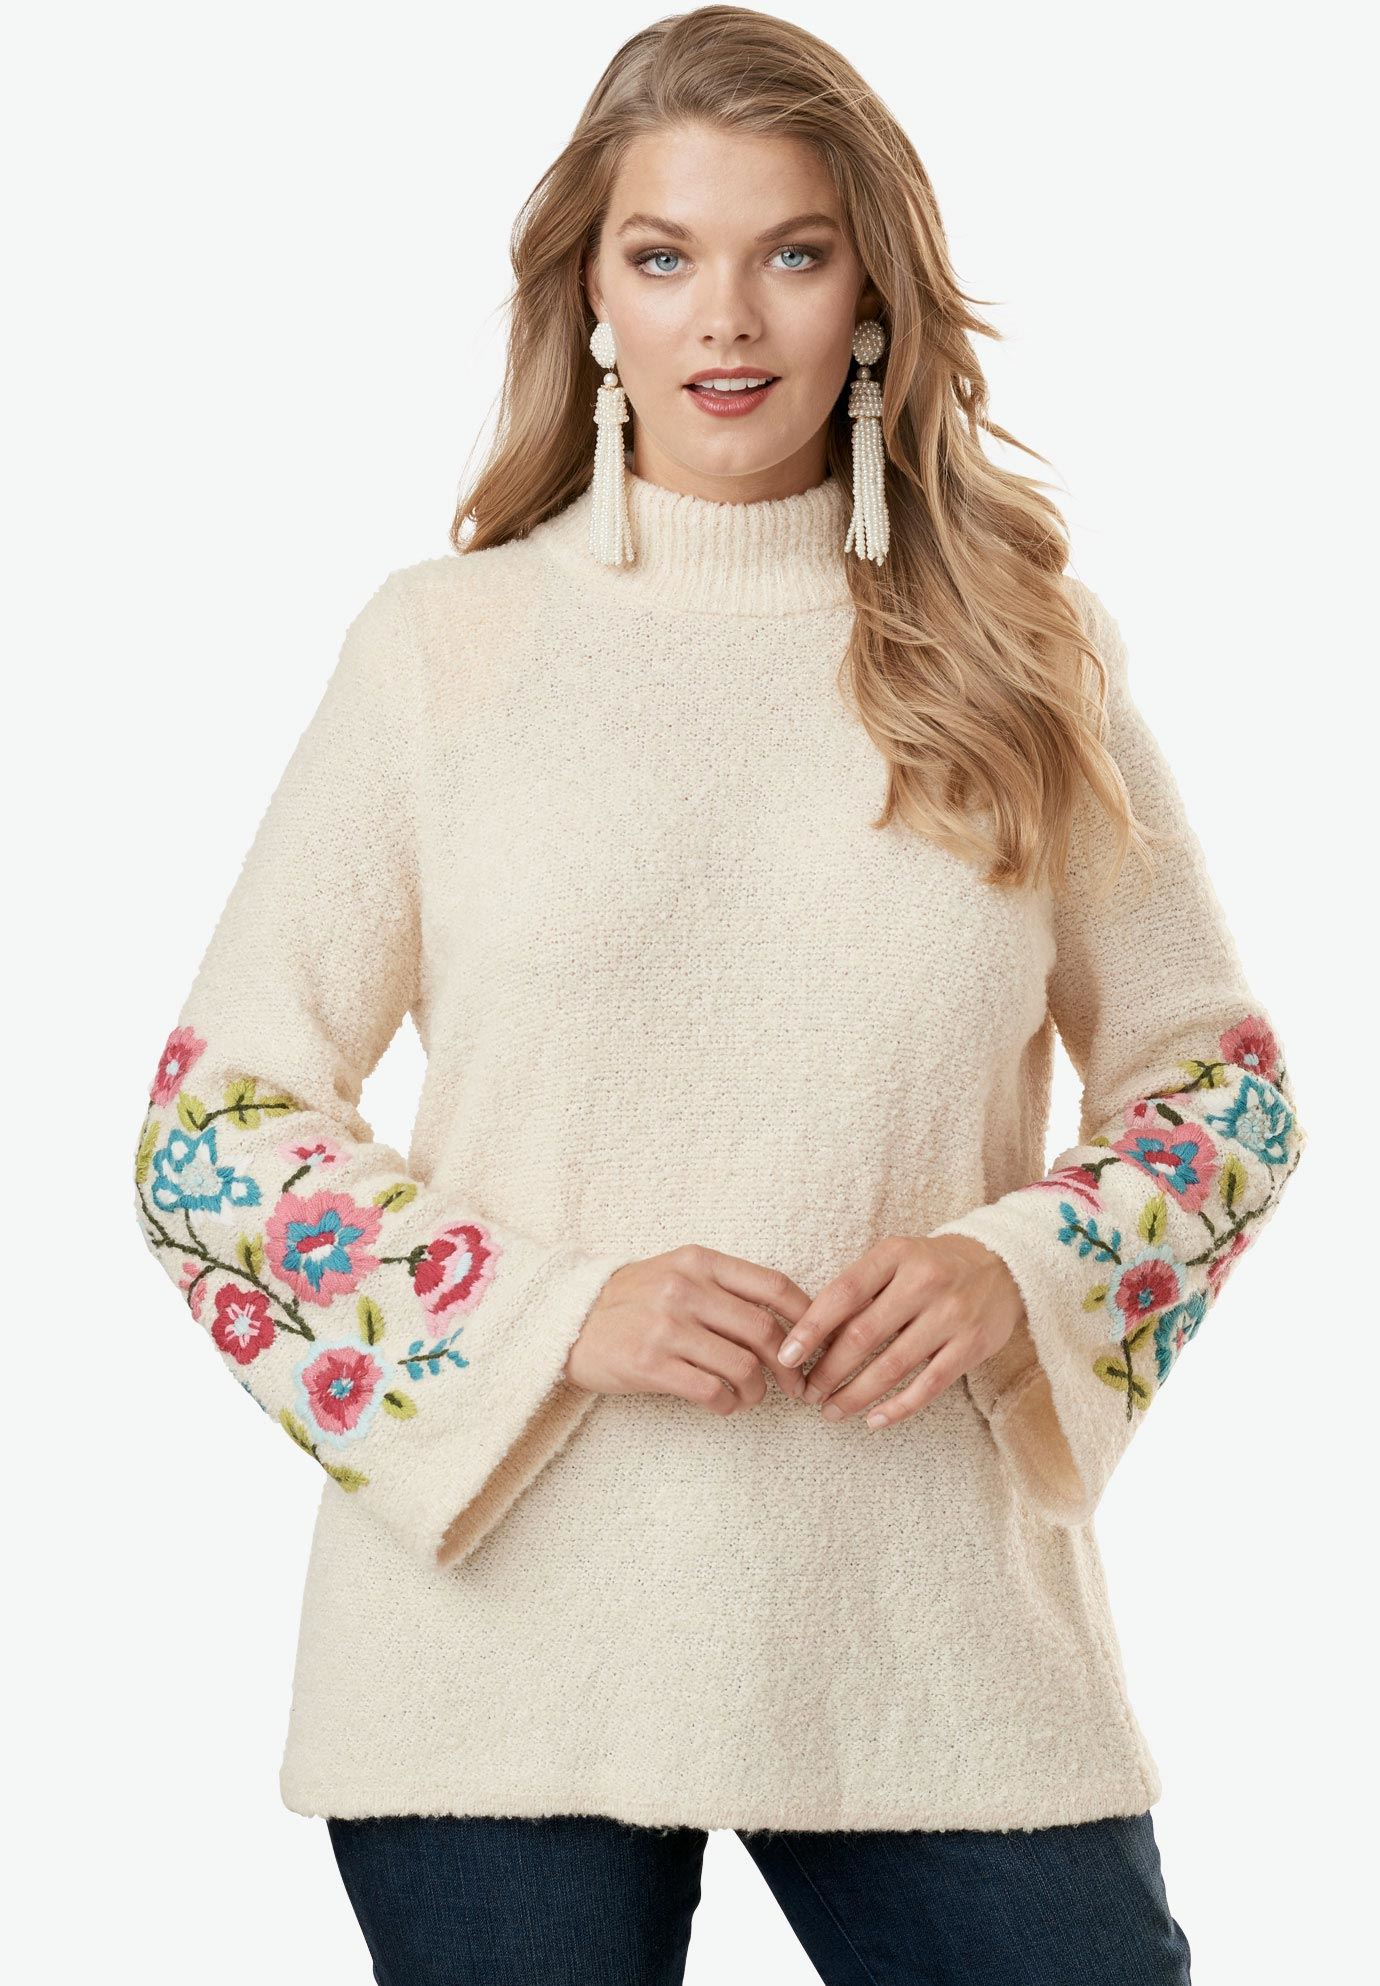 Floral Embroidered Sweater By Denim 247 Plus Size Sweaters Roamans